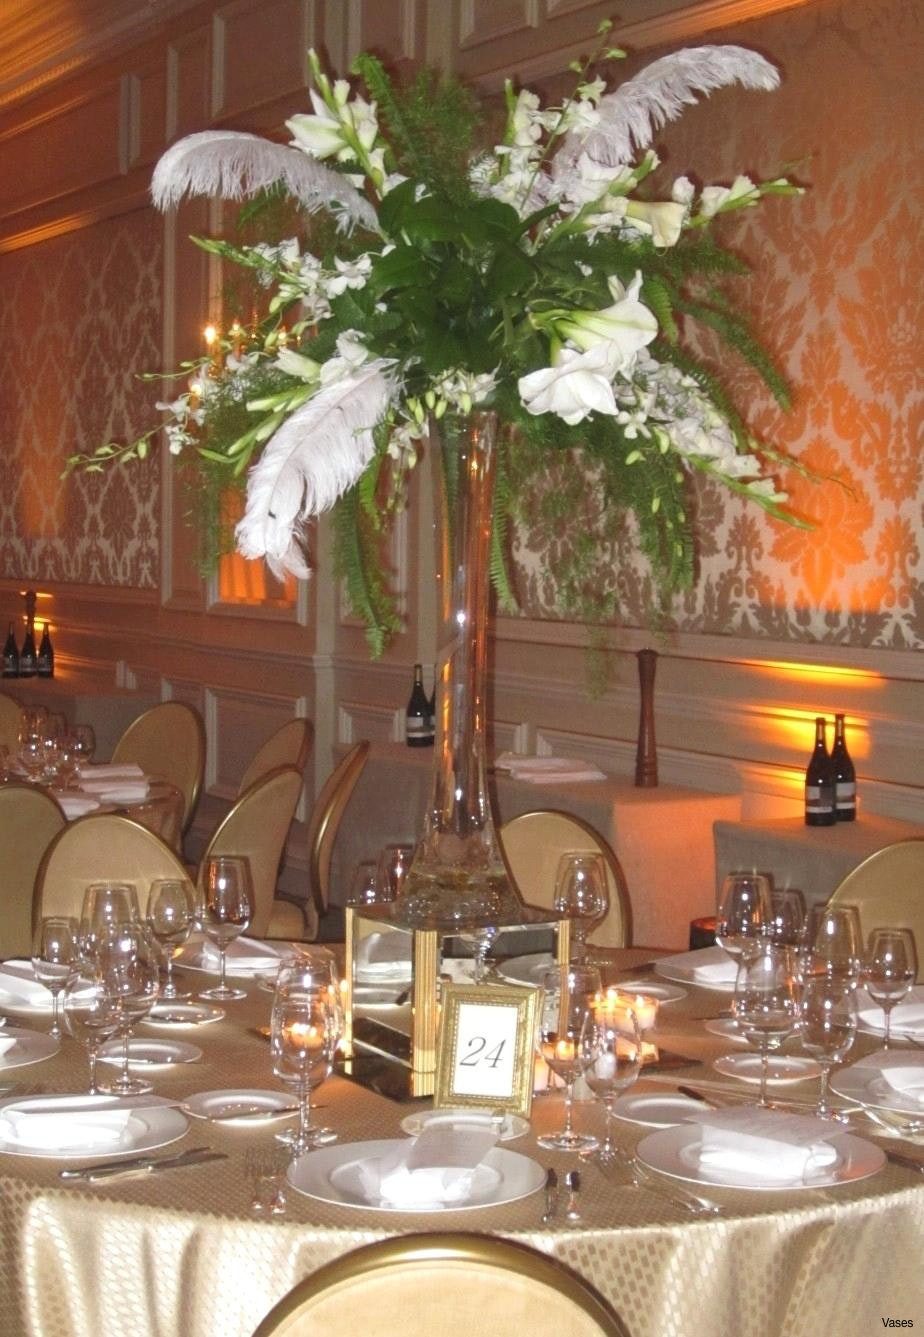 Inexpensive Silver Vases Of Unusual Design Ideas Cheap Vases for Centerpieces Table Archives within Unusual Design Ideas Cheap Vases for Centerpieces Table Archives with Paris Wedding Invite A